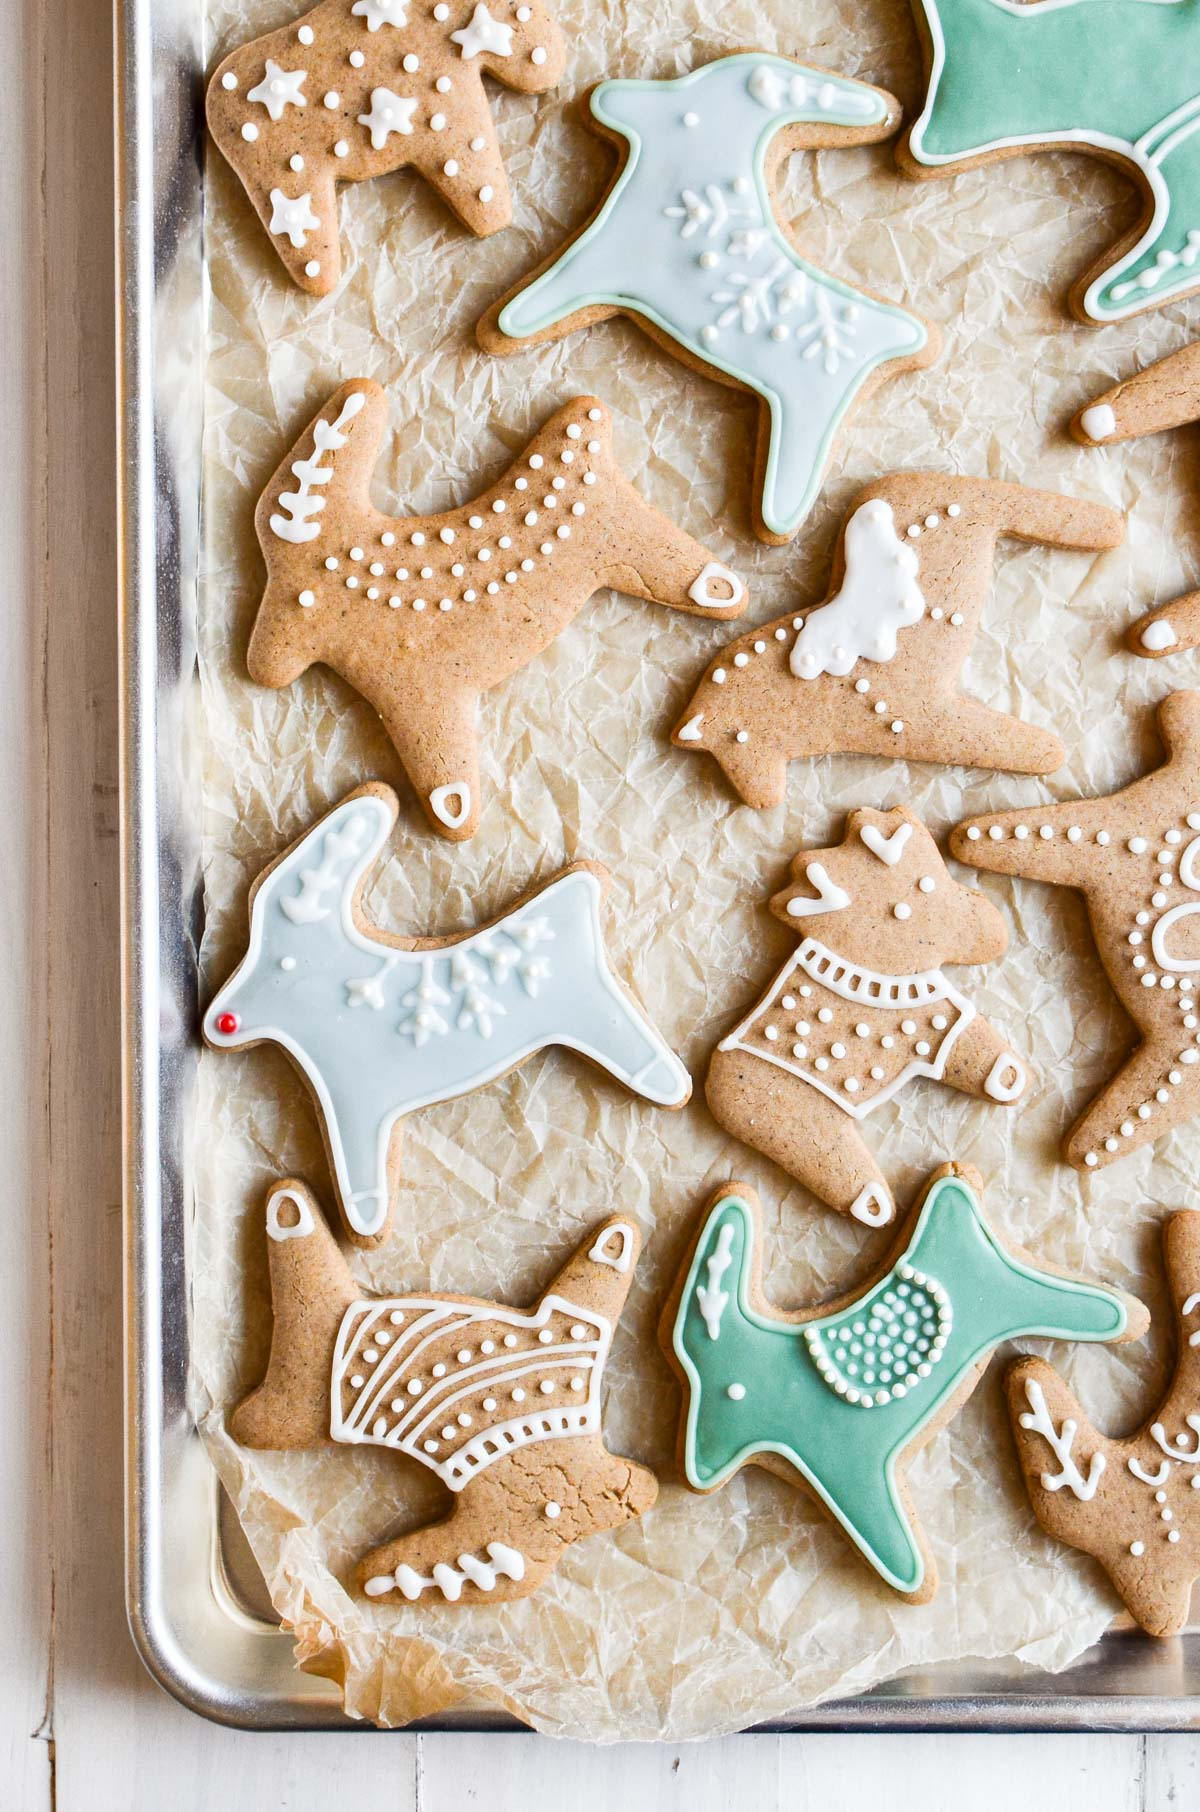 Decorated Pepparkakor Cookies on a baking sheet lined with parchment paper.